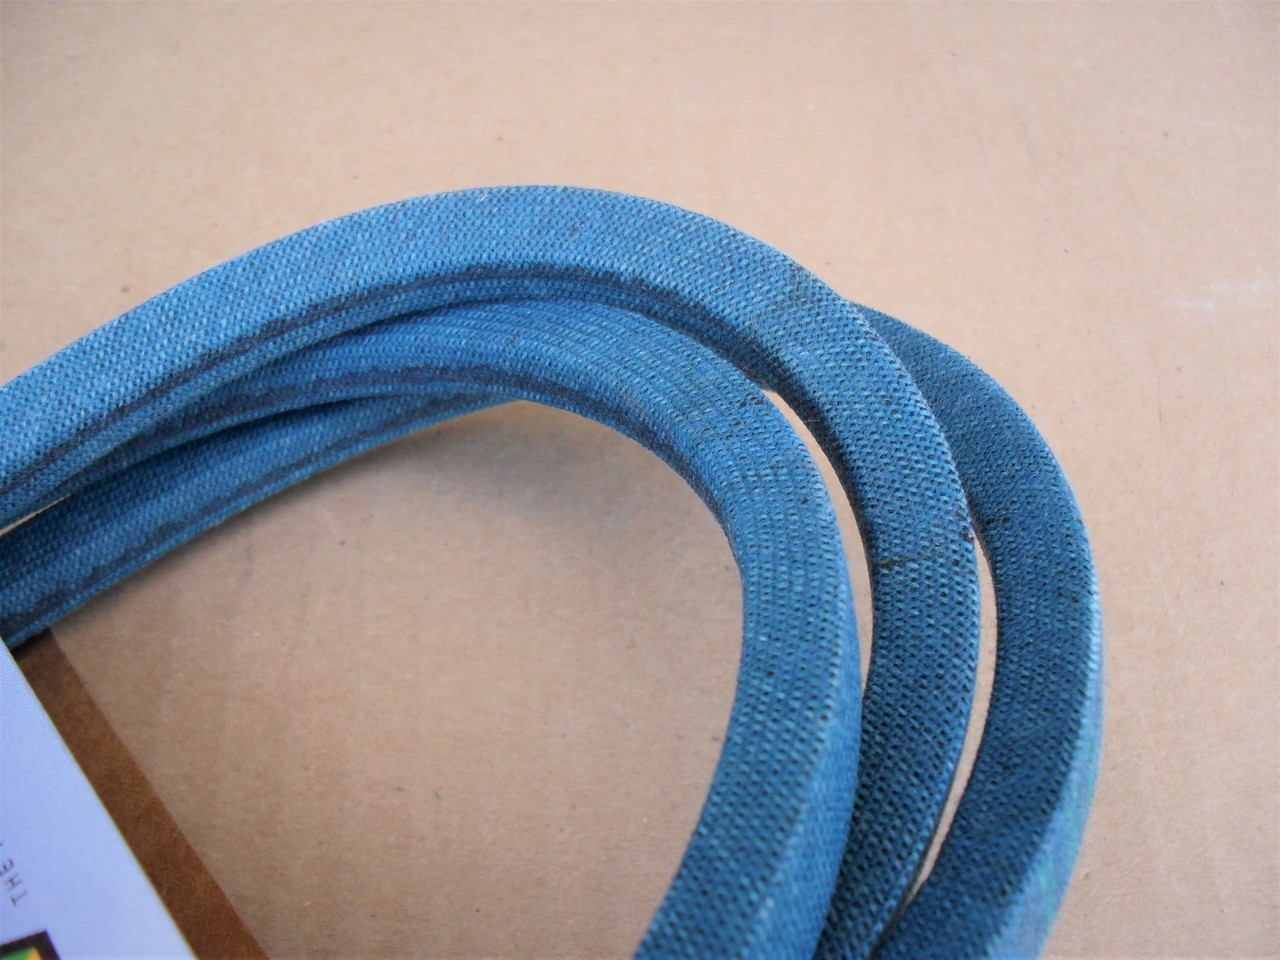 SIMPLICITY MANUFACTURING 1666655SM made with Kevlar Replacement Belt